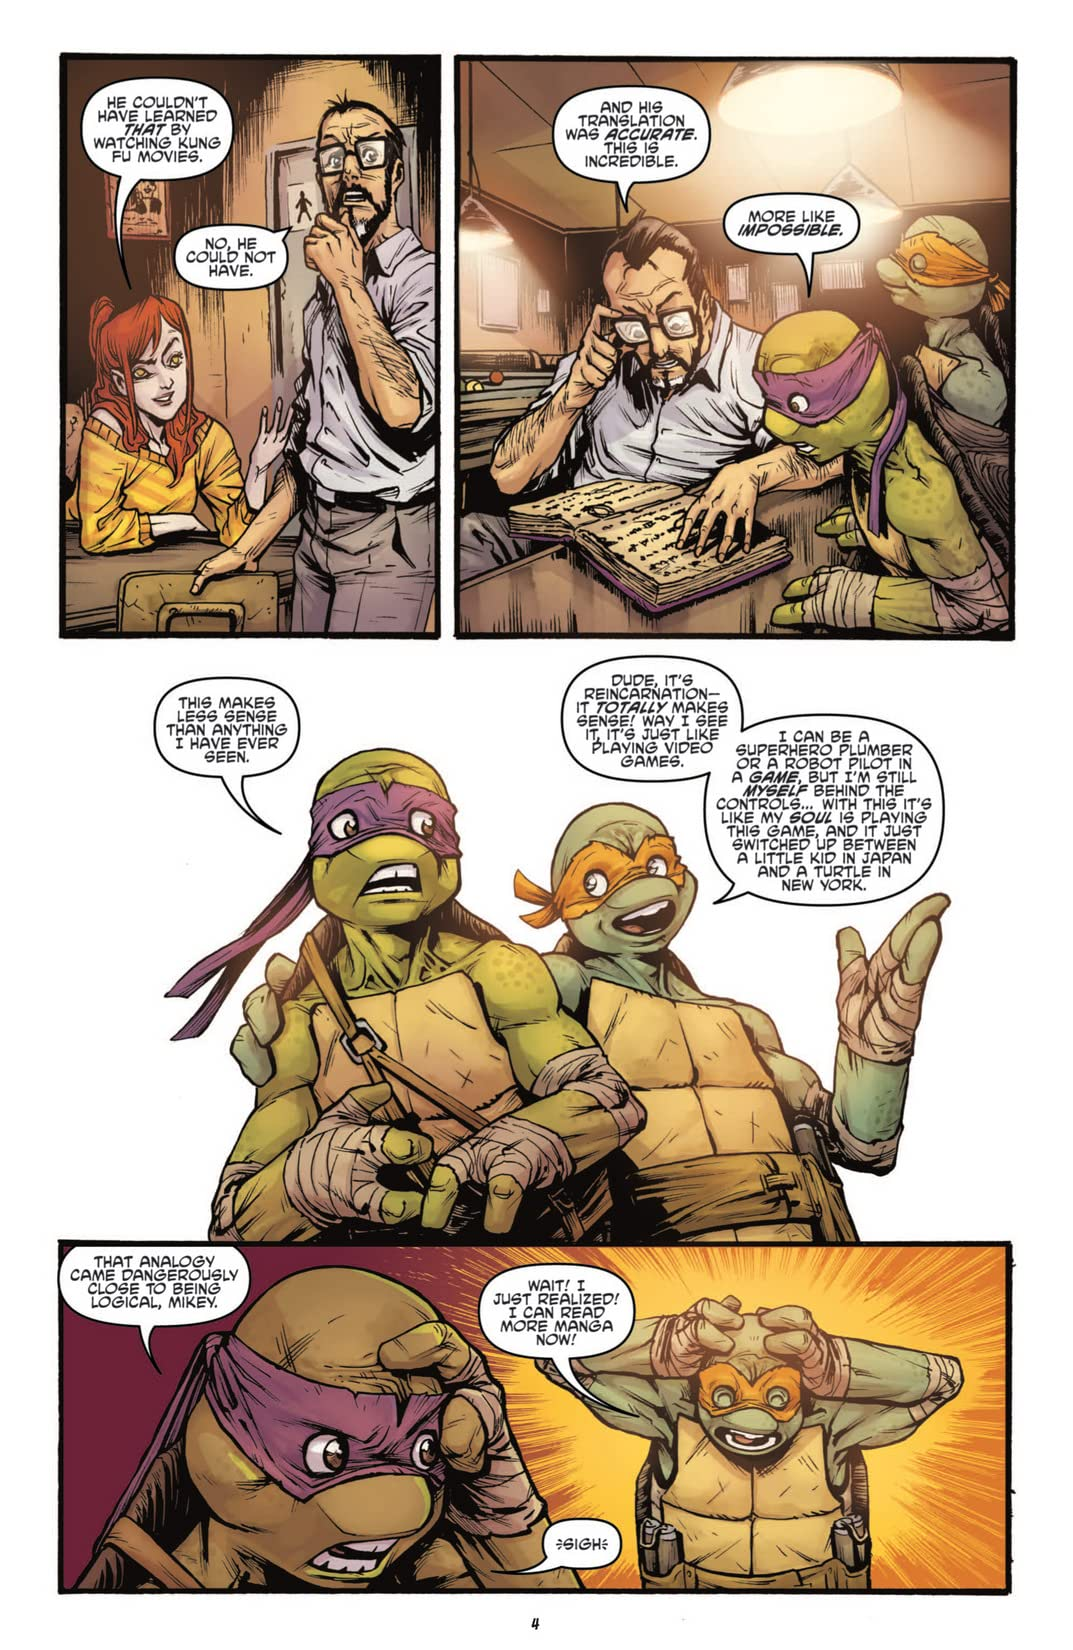 Teenage Mutant Ninja Turtles: Secret History of the Foot Clan #4 (of 4)